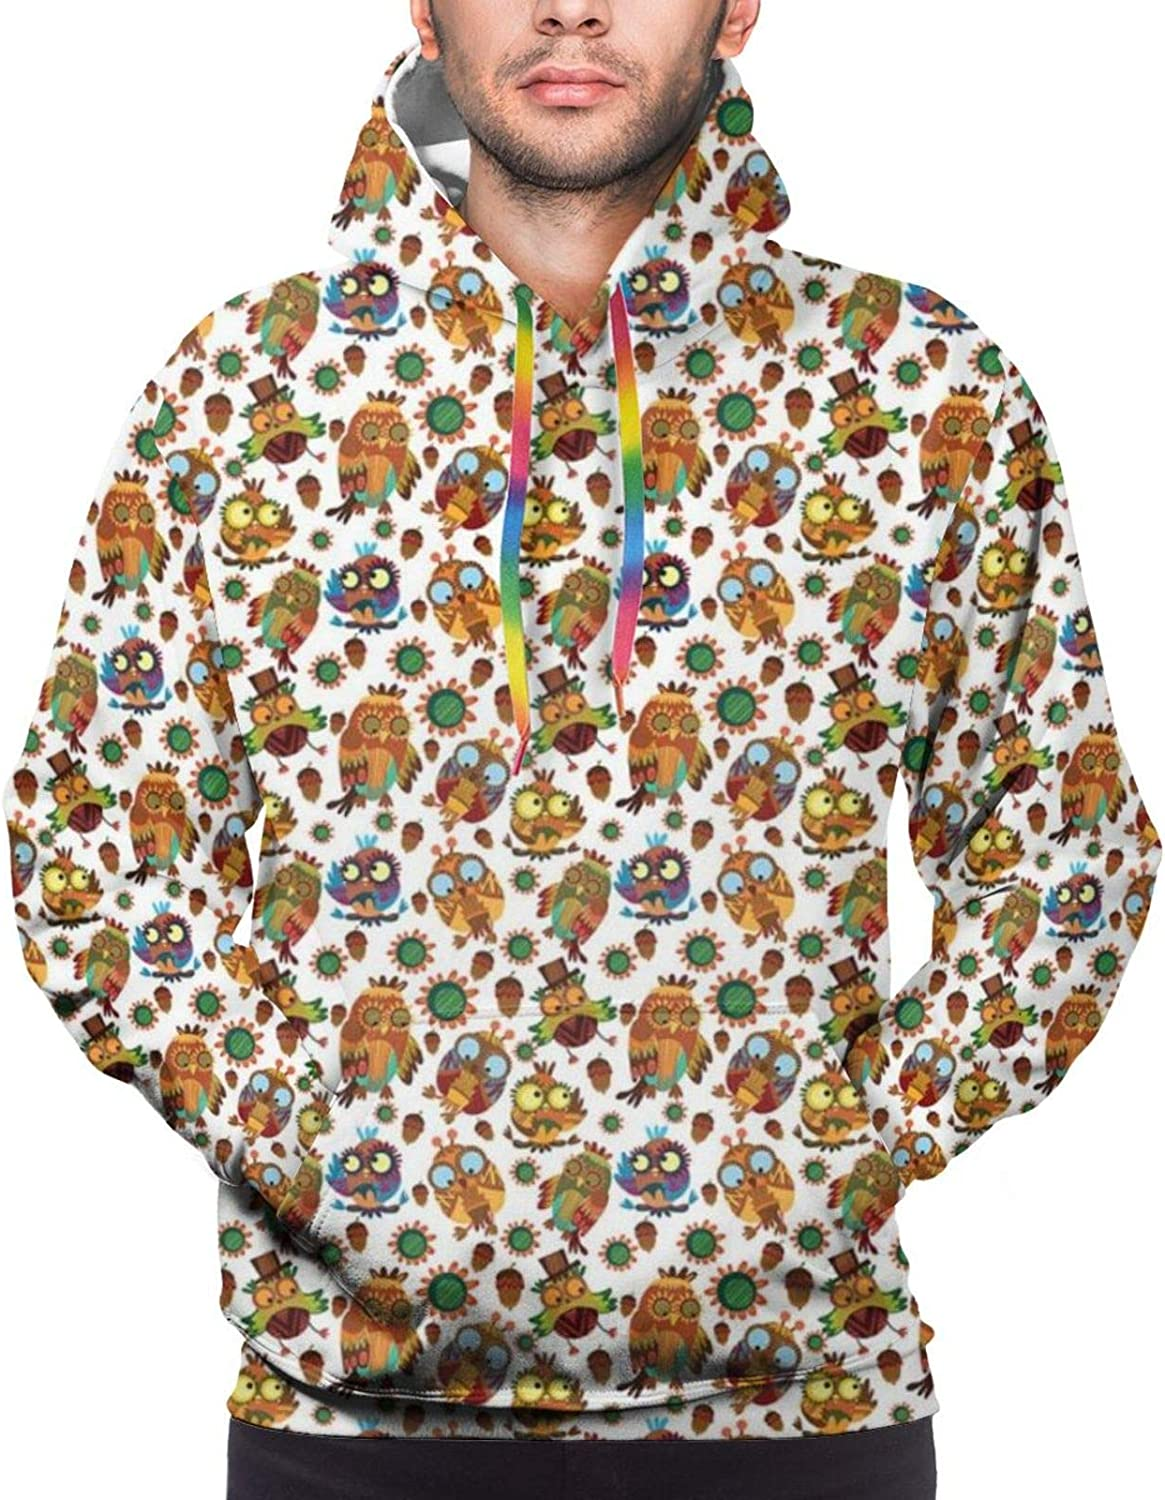 Men's Hoodies Sweatshirts,Abstract and Artistic Stylized Funny Birds with Flowers and Acorns Repetition,Small